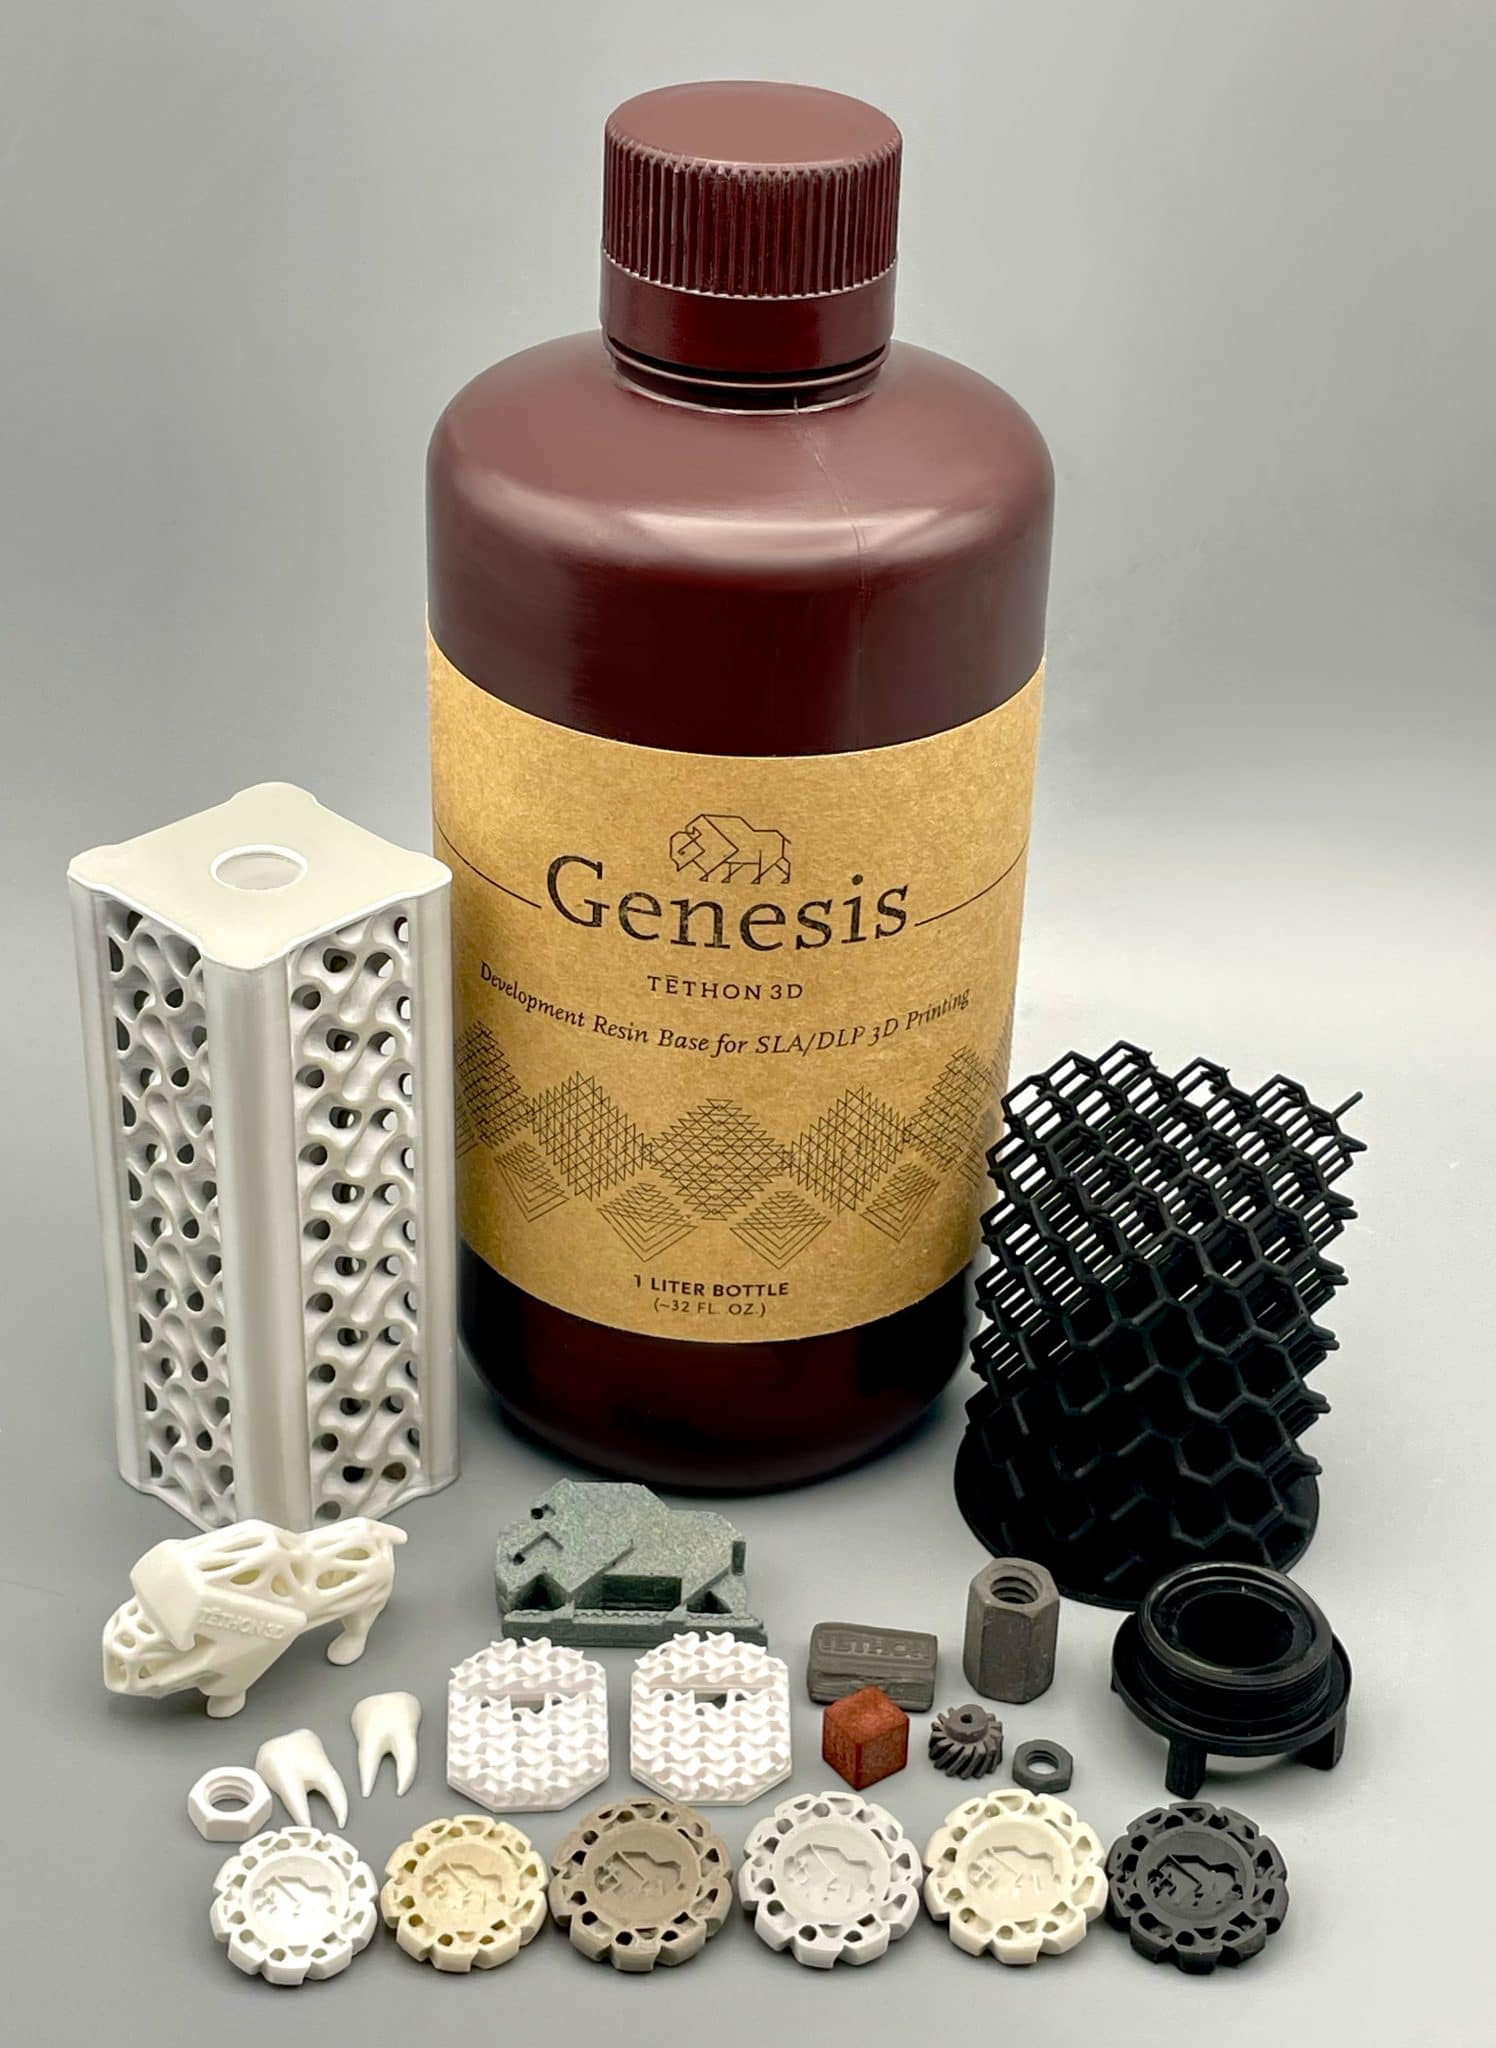 Tethon 3D receives patent for Genesis resins as a matrix for ceramic AM